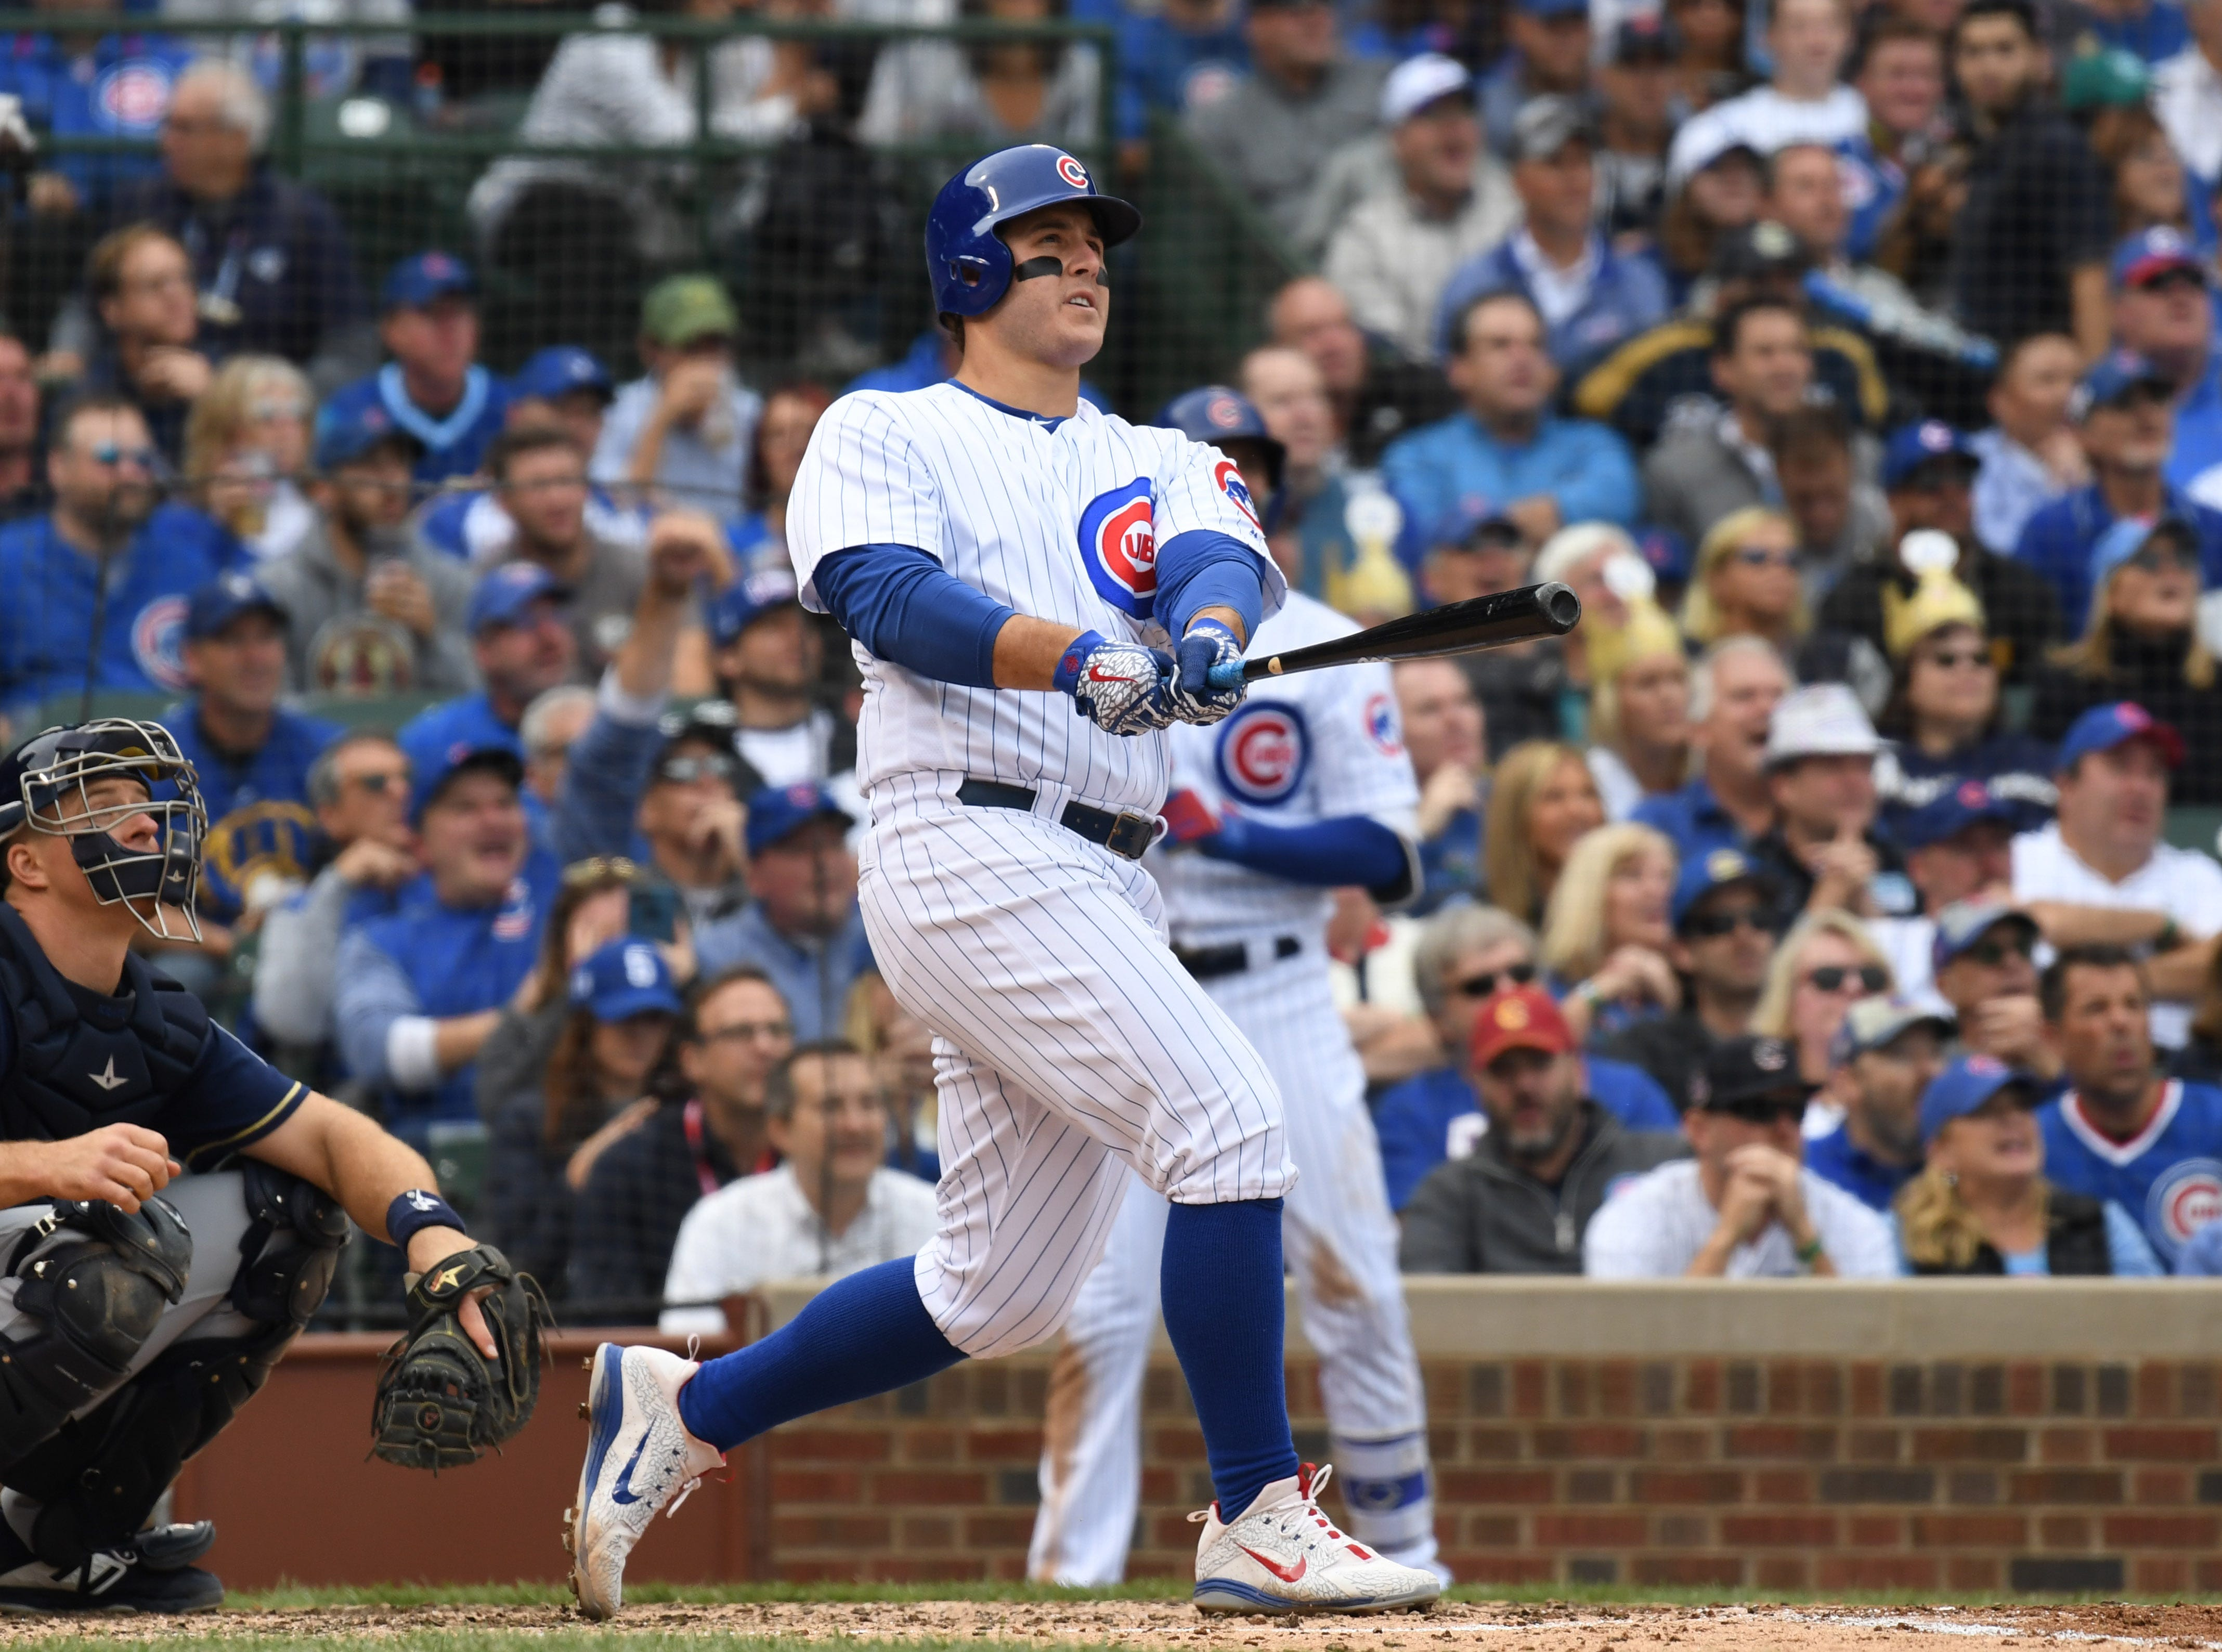 Cubs first baseman Anthony Rizzo hits a solo home run in the fifth.